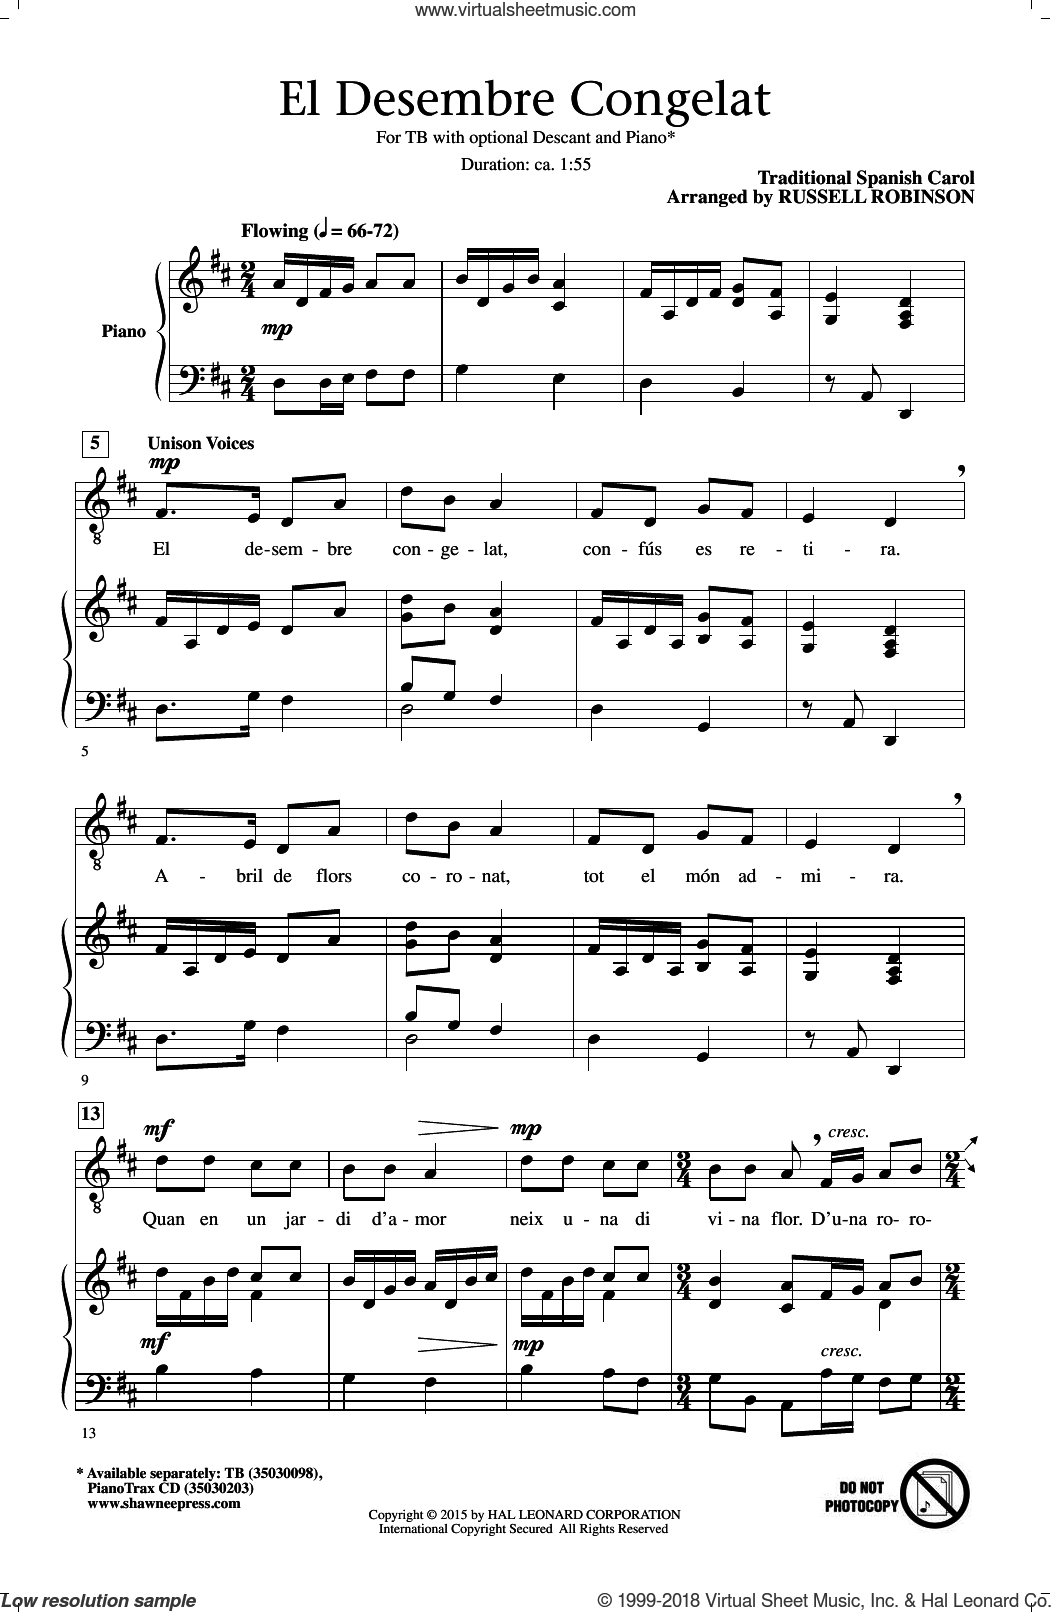 El Desembre Congelat sheet music for choir and piano (TB) by Russell Robinson. Score Image Preview.